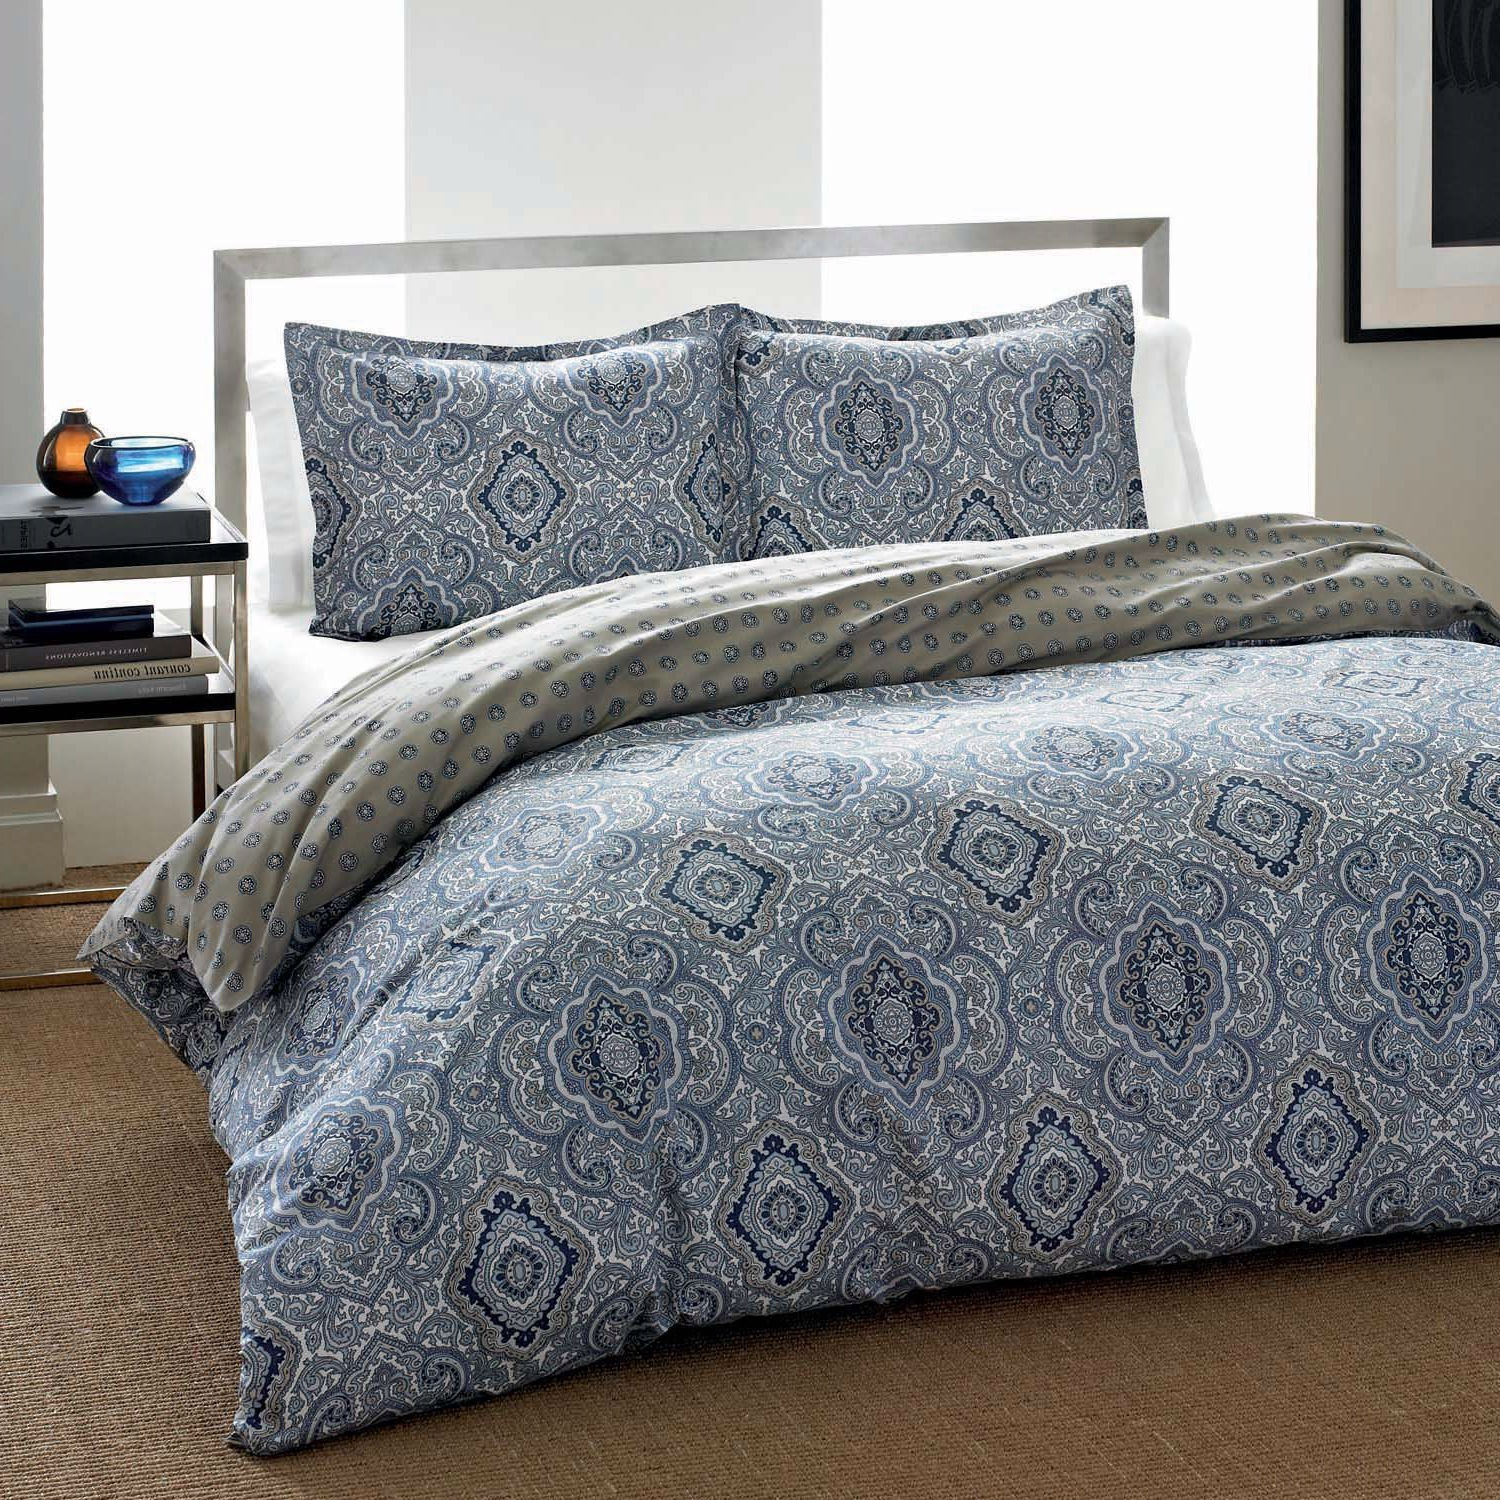 Full Queen Cotton Comforter Set With Grey Blue Damask Pattern Fastfurnishings Com